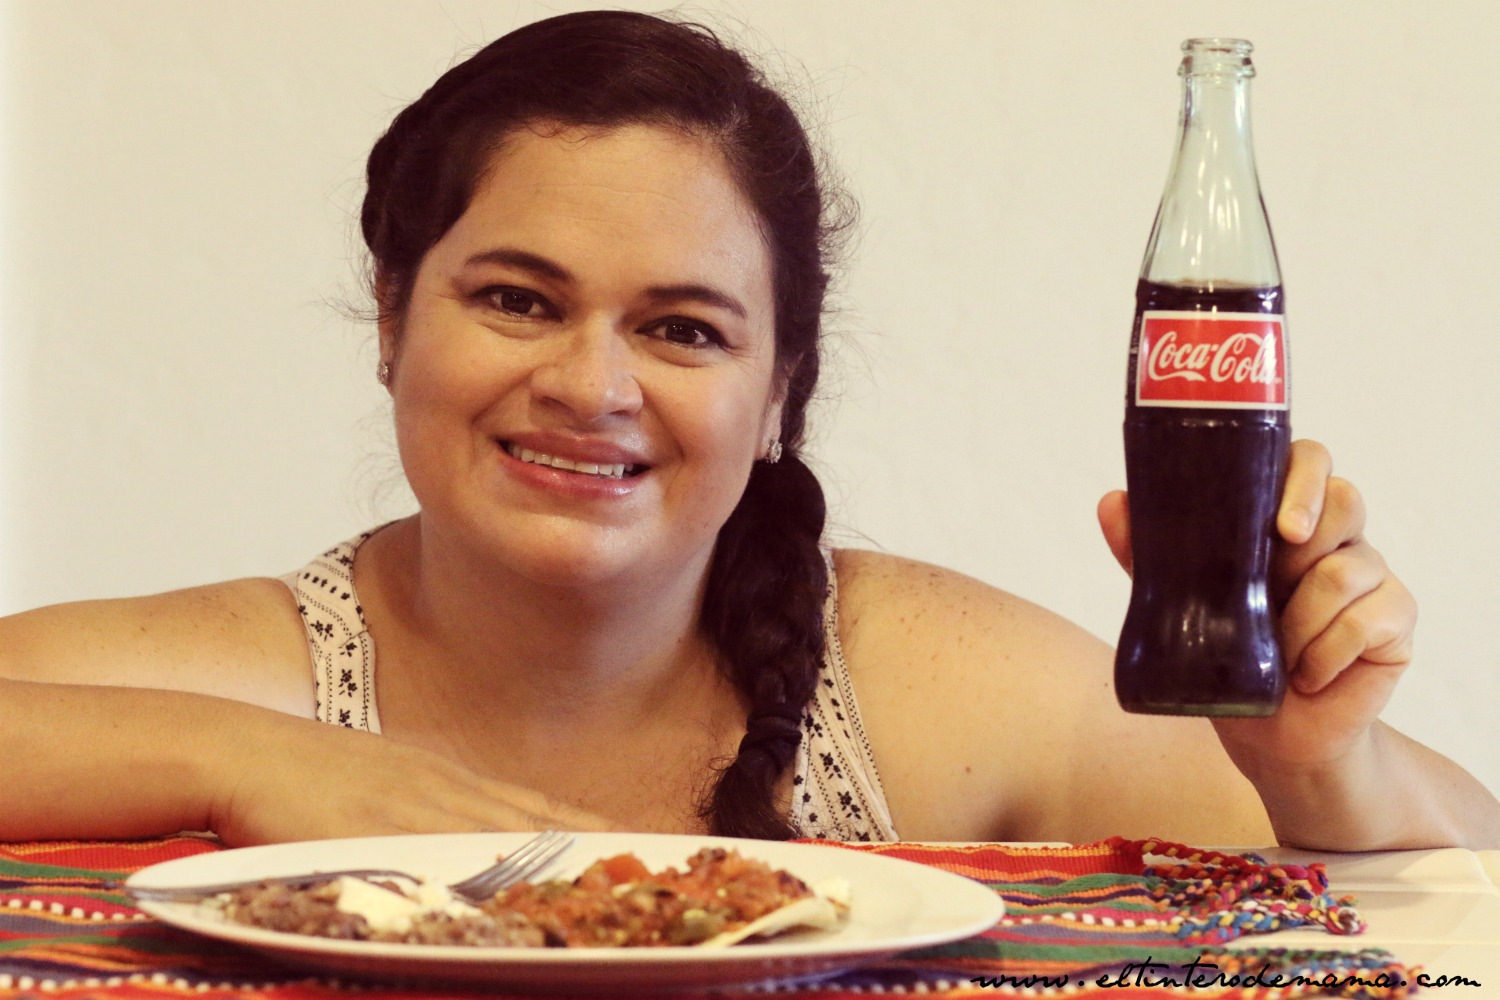 Celebrate-Hispanic-Heritage-Month-with-Coca-Cola